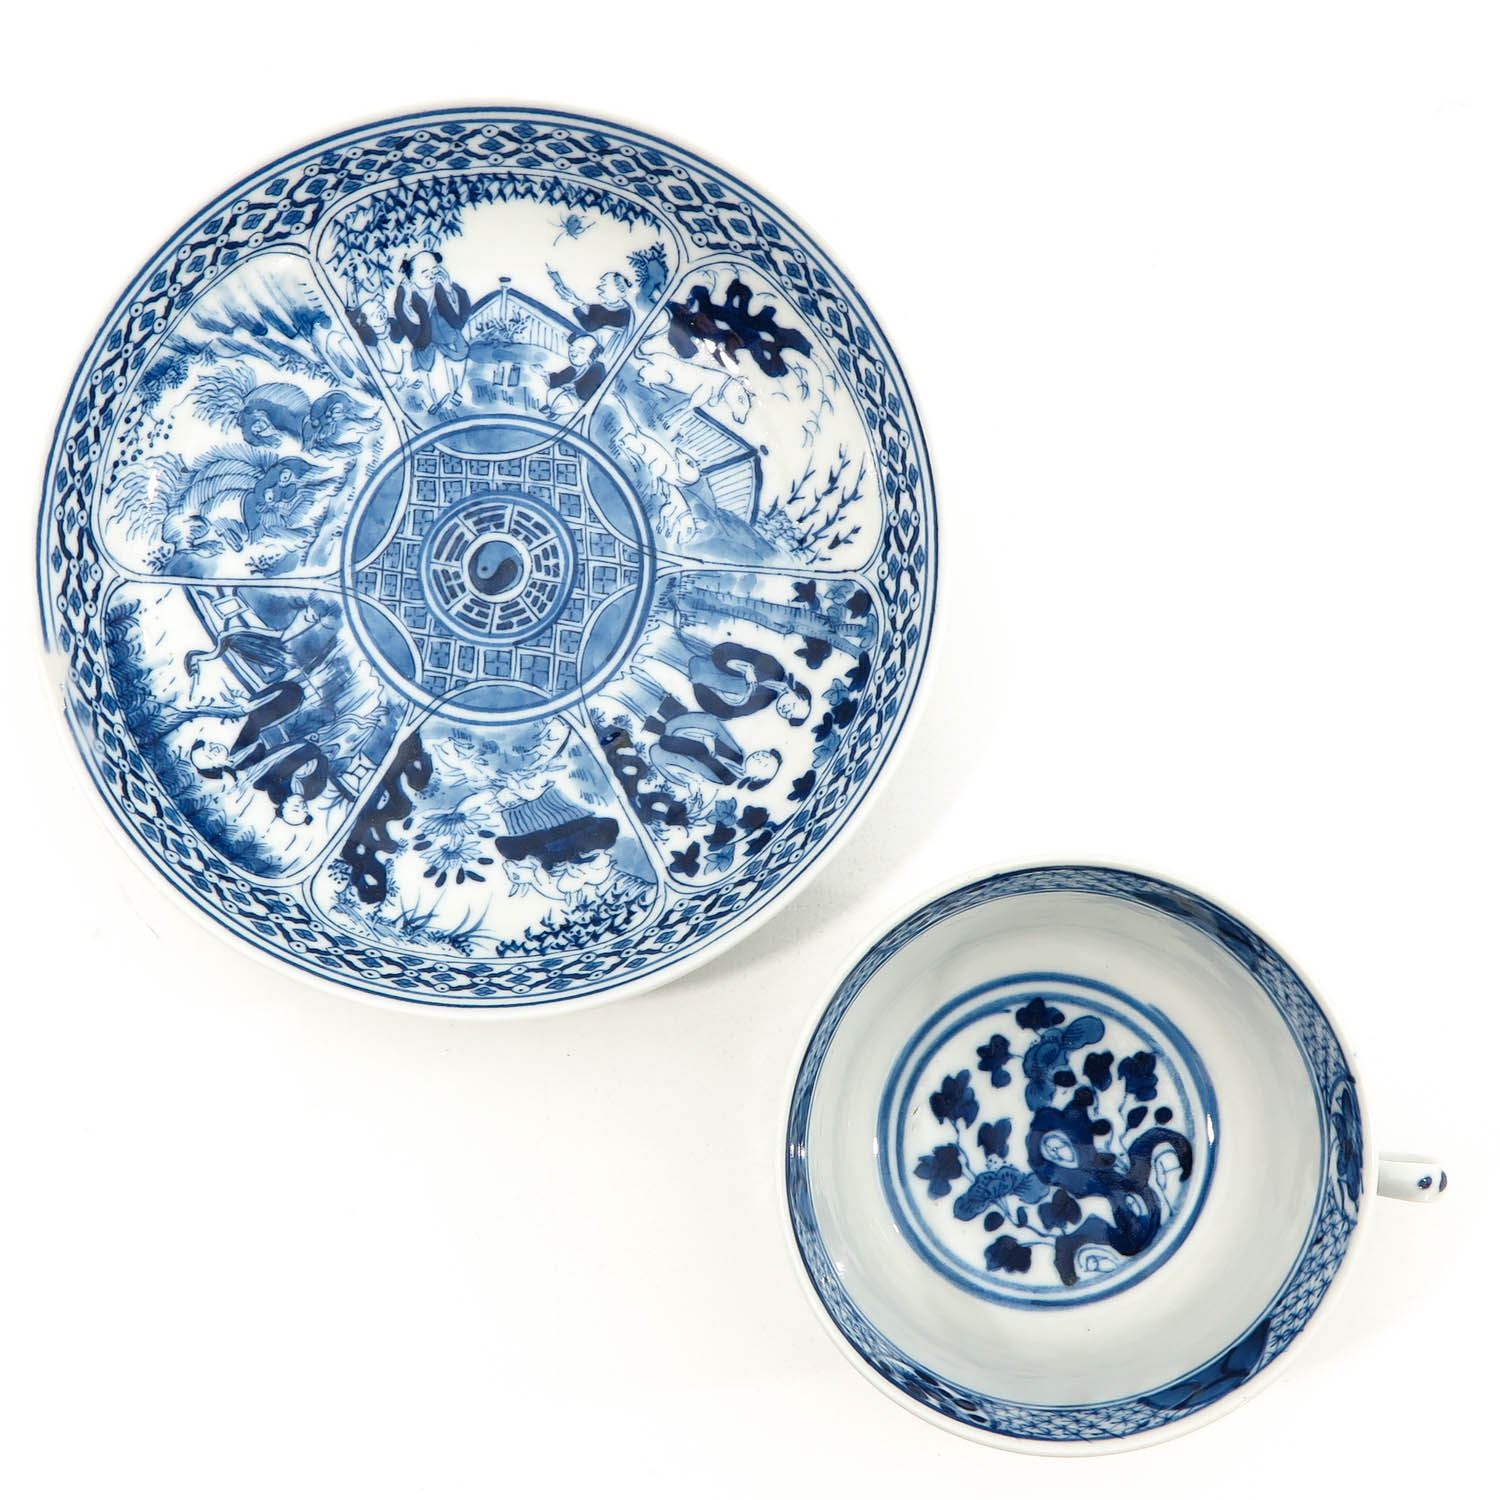 A Blue and White Cup and Saucer - Image 5 of 9